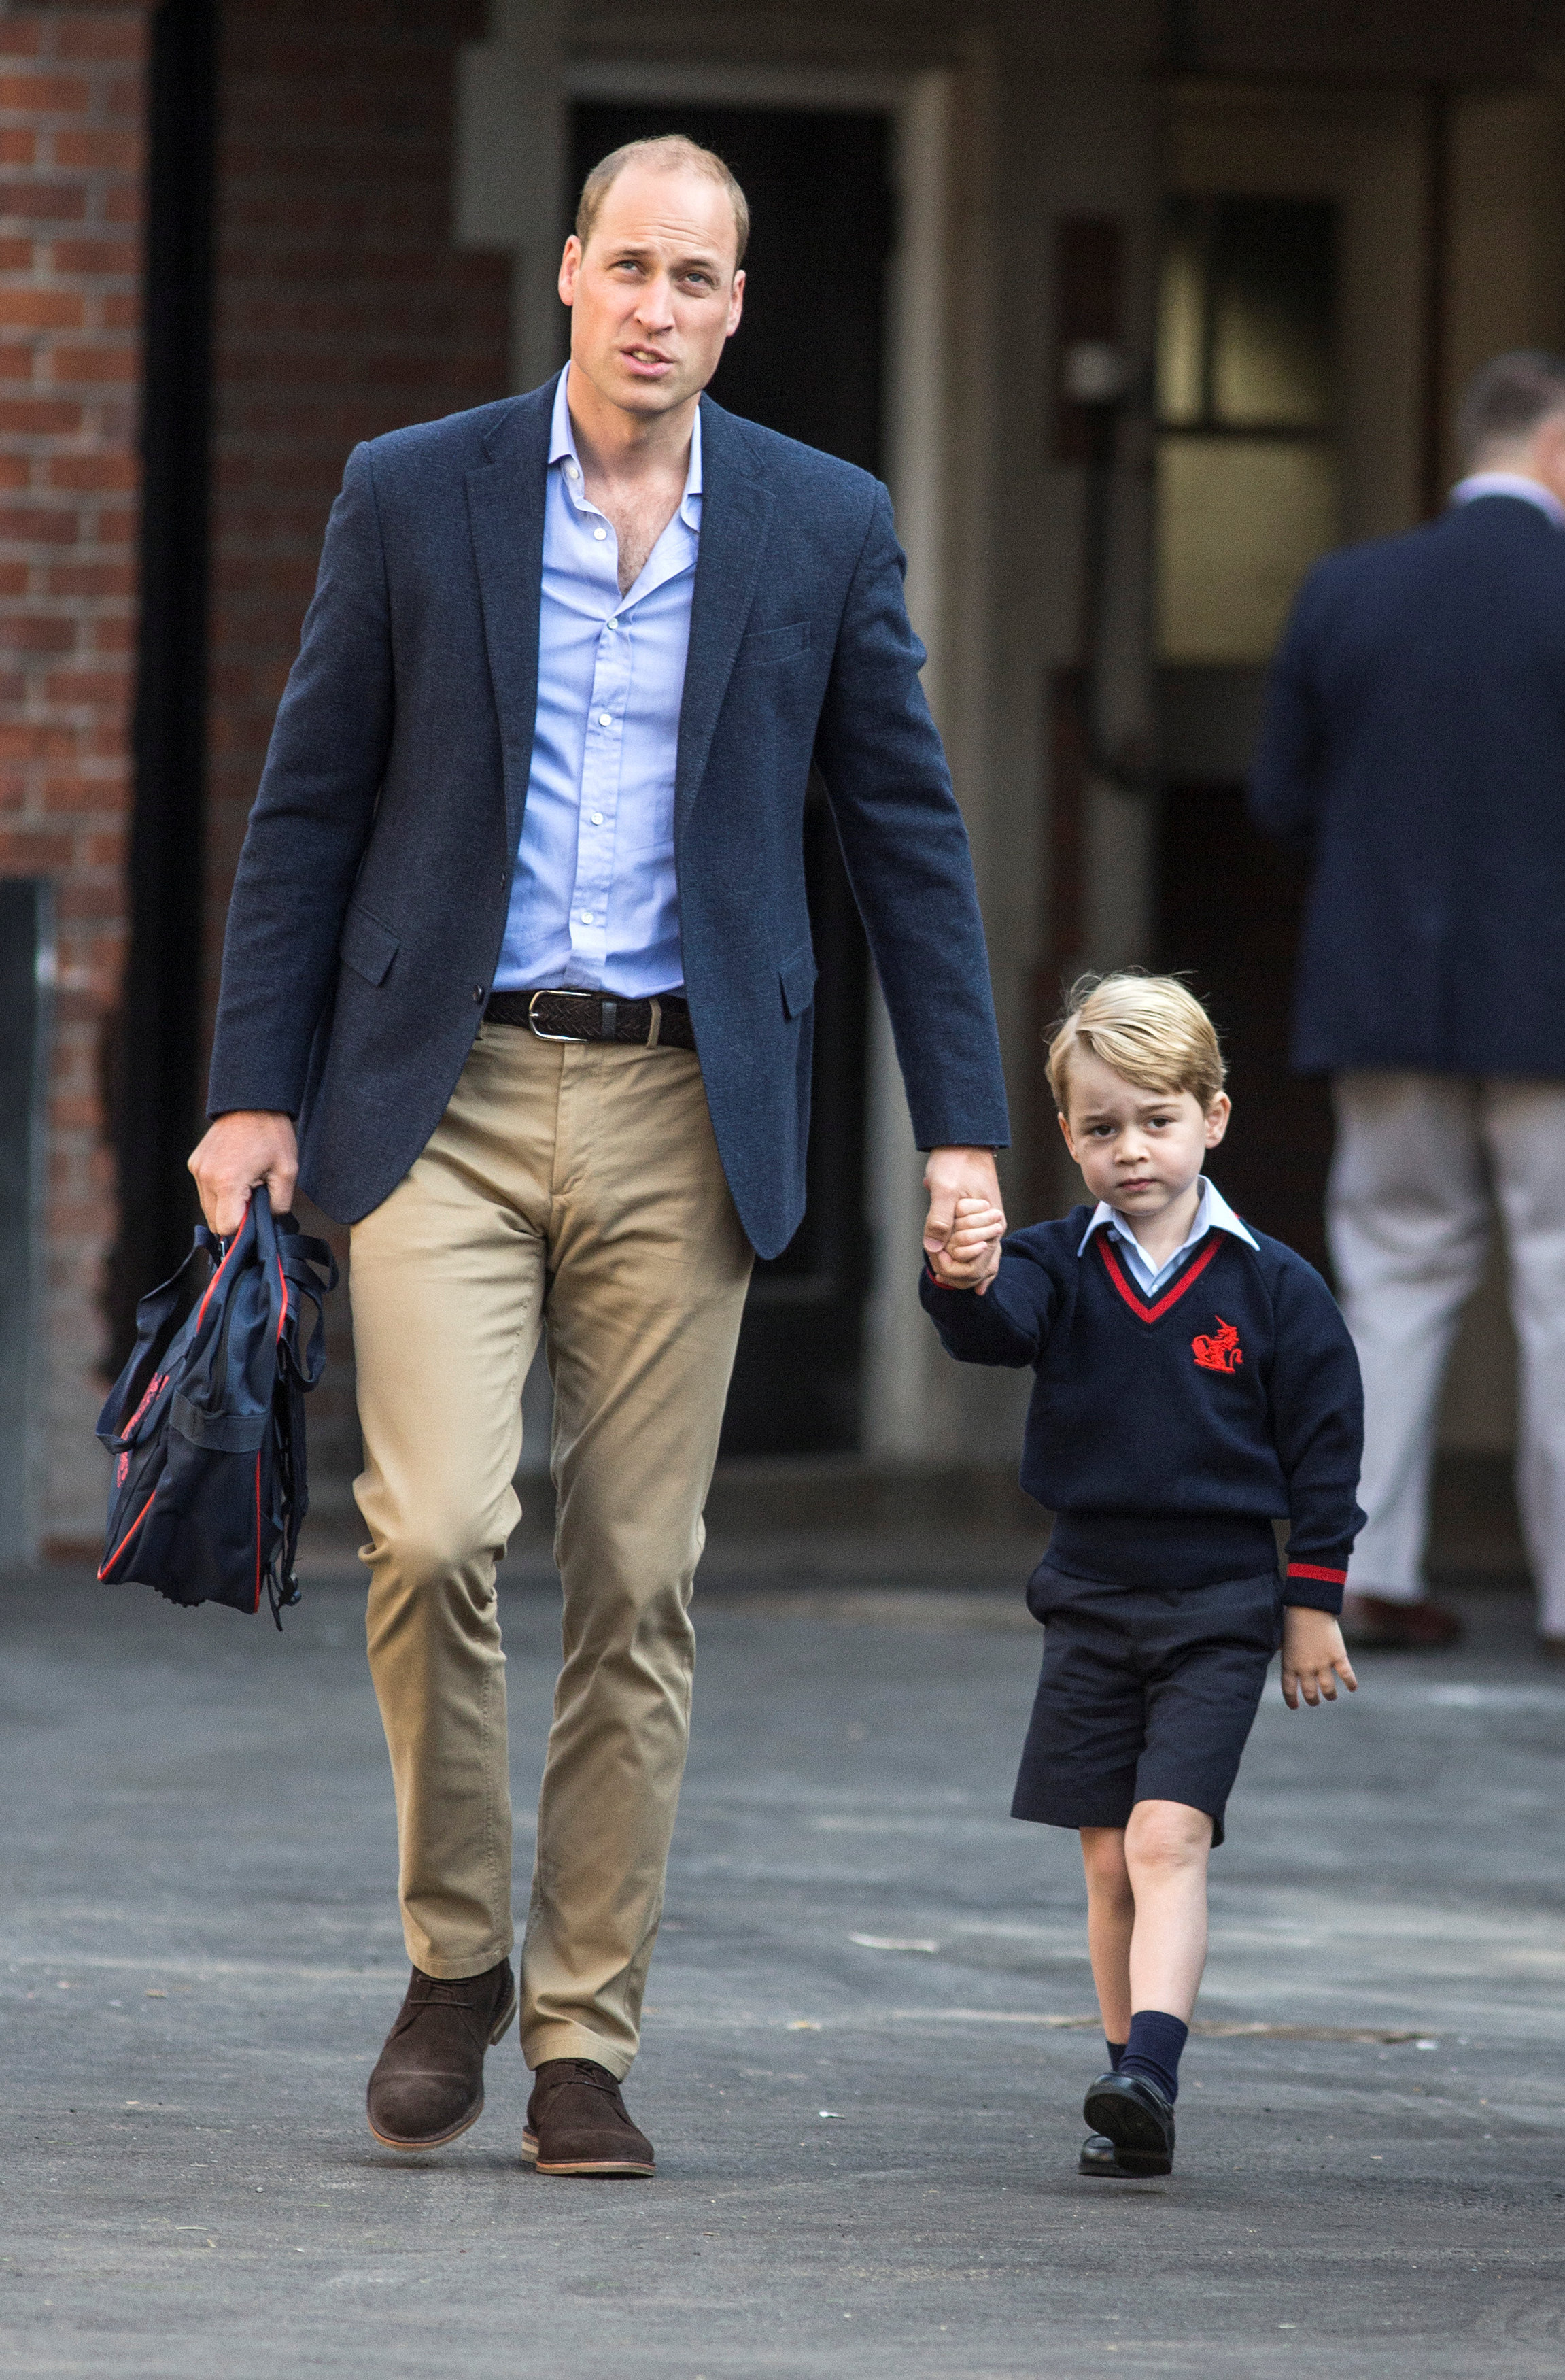 Britain's Prince William accompanies his son Prince George on his first day of school at Thomas's school in Battersea, London, Sept. 7, 2017. (REUTERS/Richard Pohle/Pool)